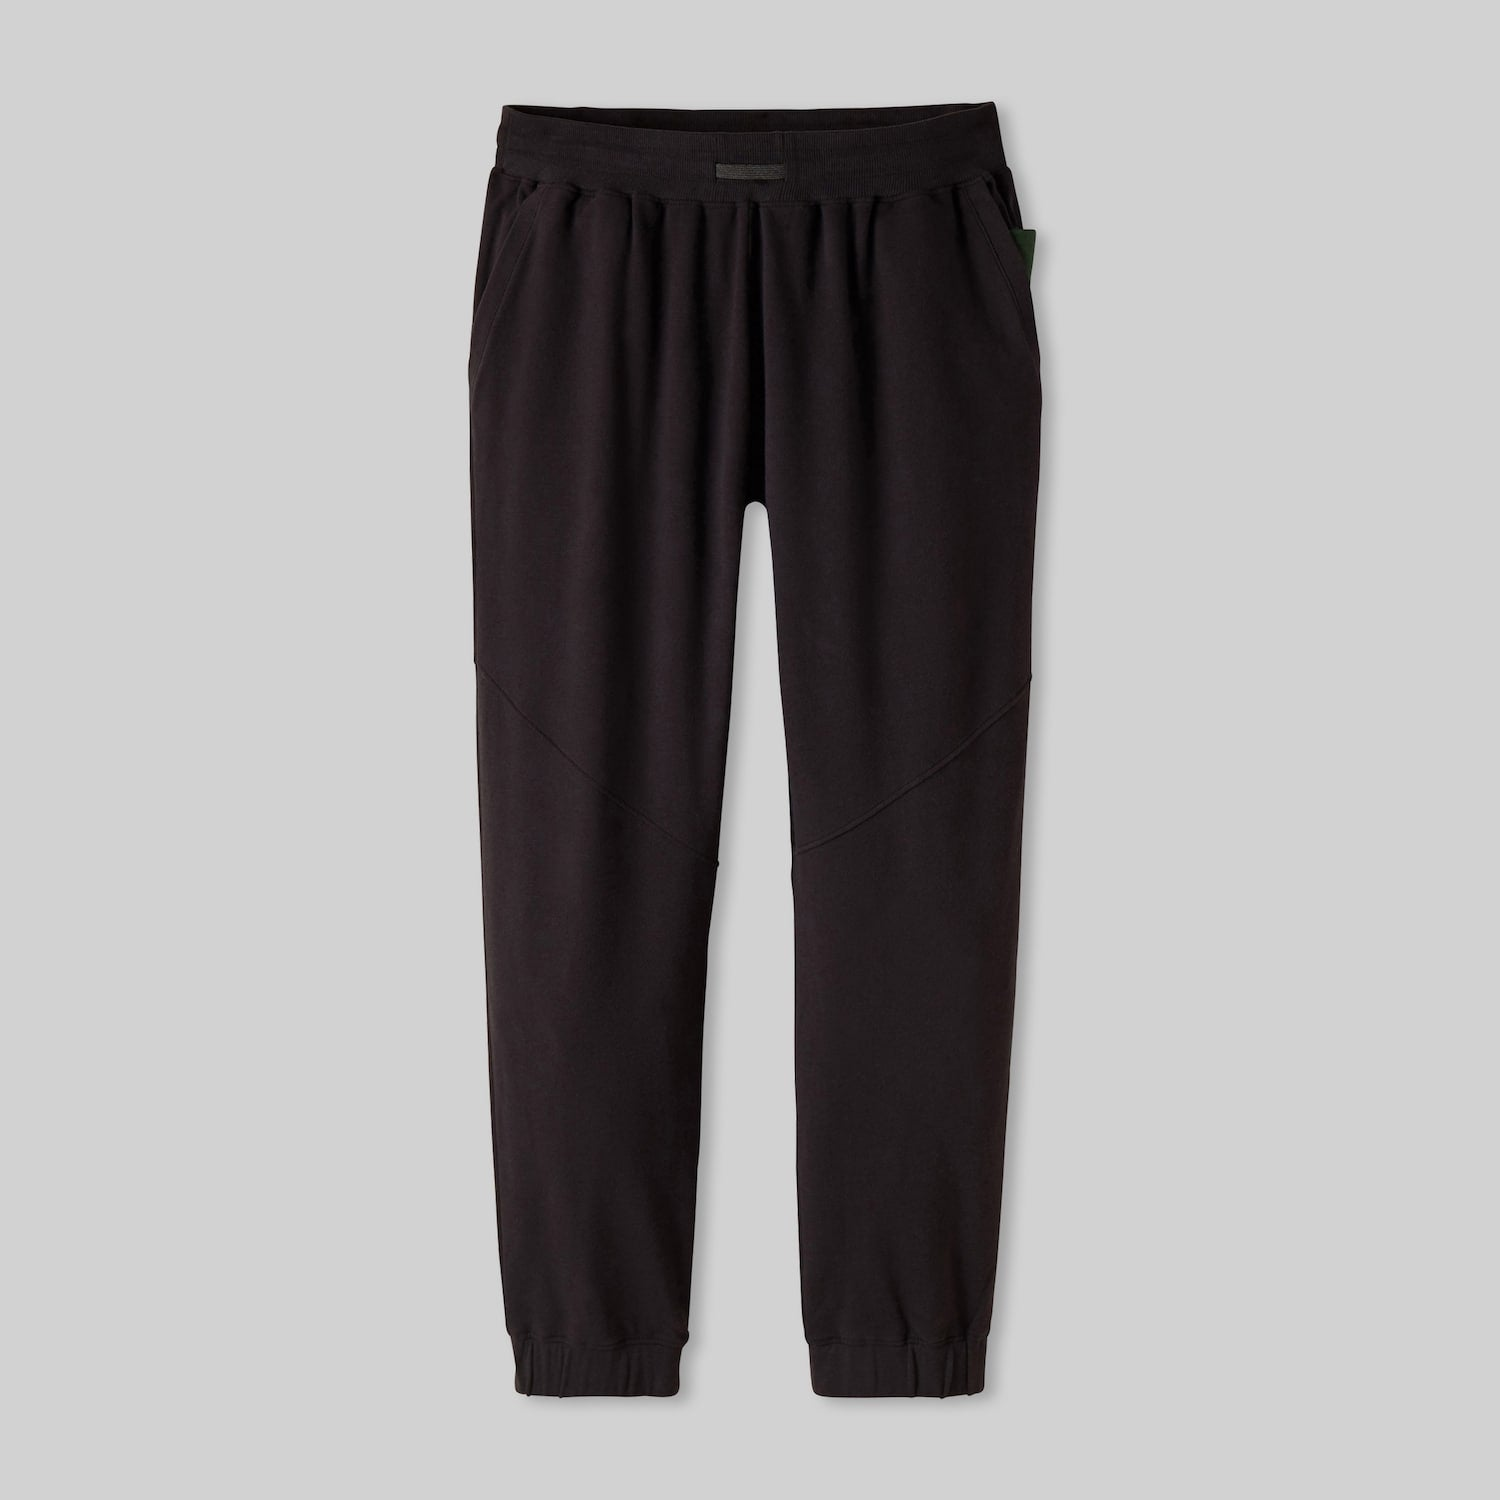 Lahgo Sleepwear Warm Pima Alpaca Fleece Pant - #Black/Forest